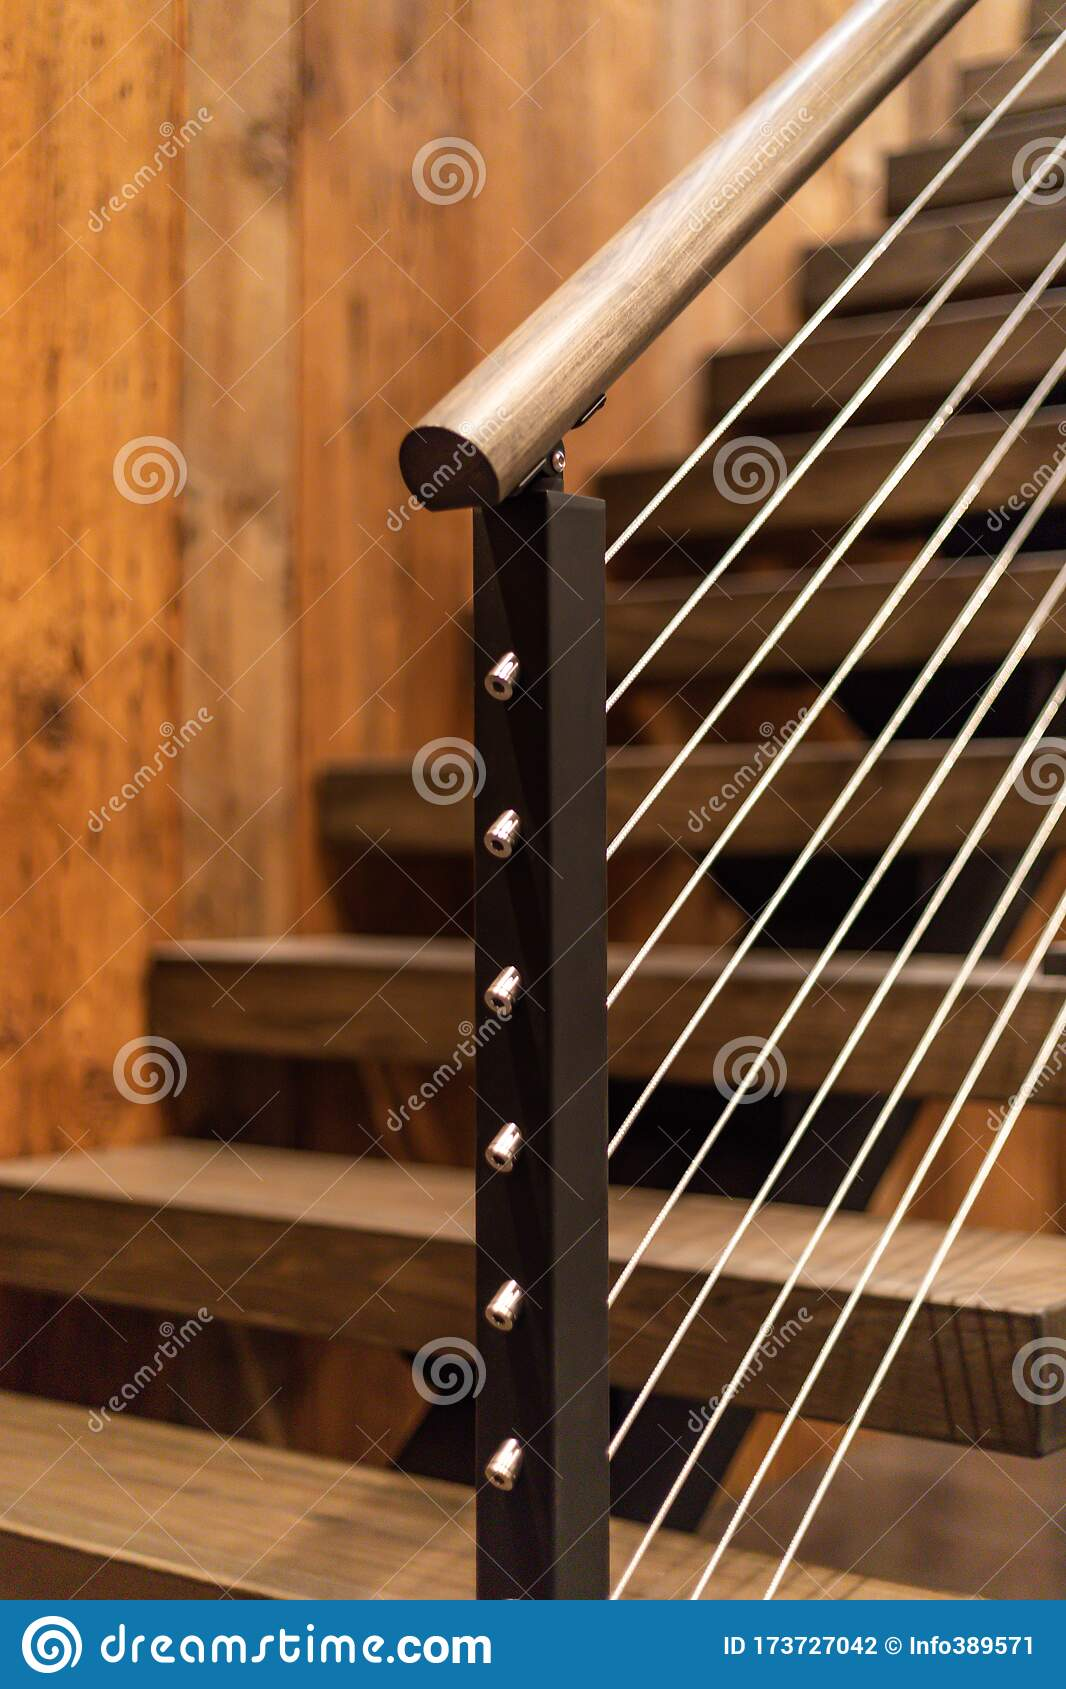 Cable Stair Railing Detail With Wood Treads Stock Photo Image Of Treads Barn 173727042